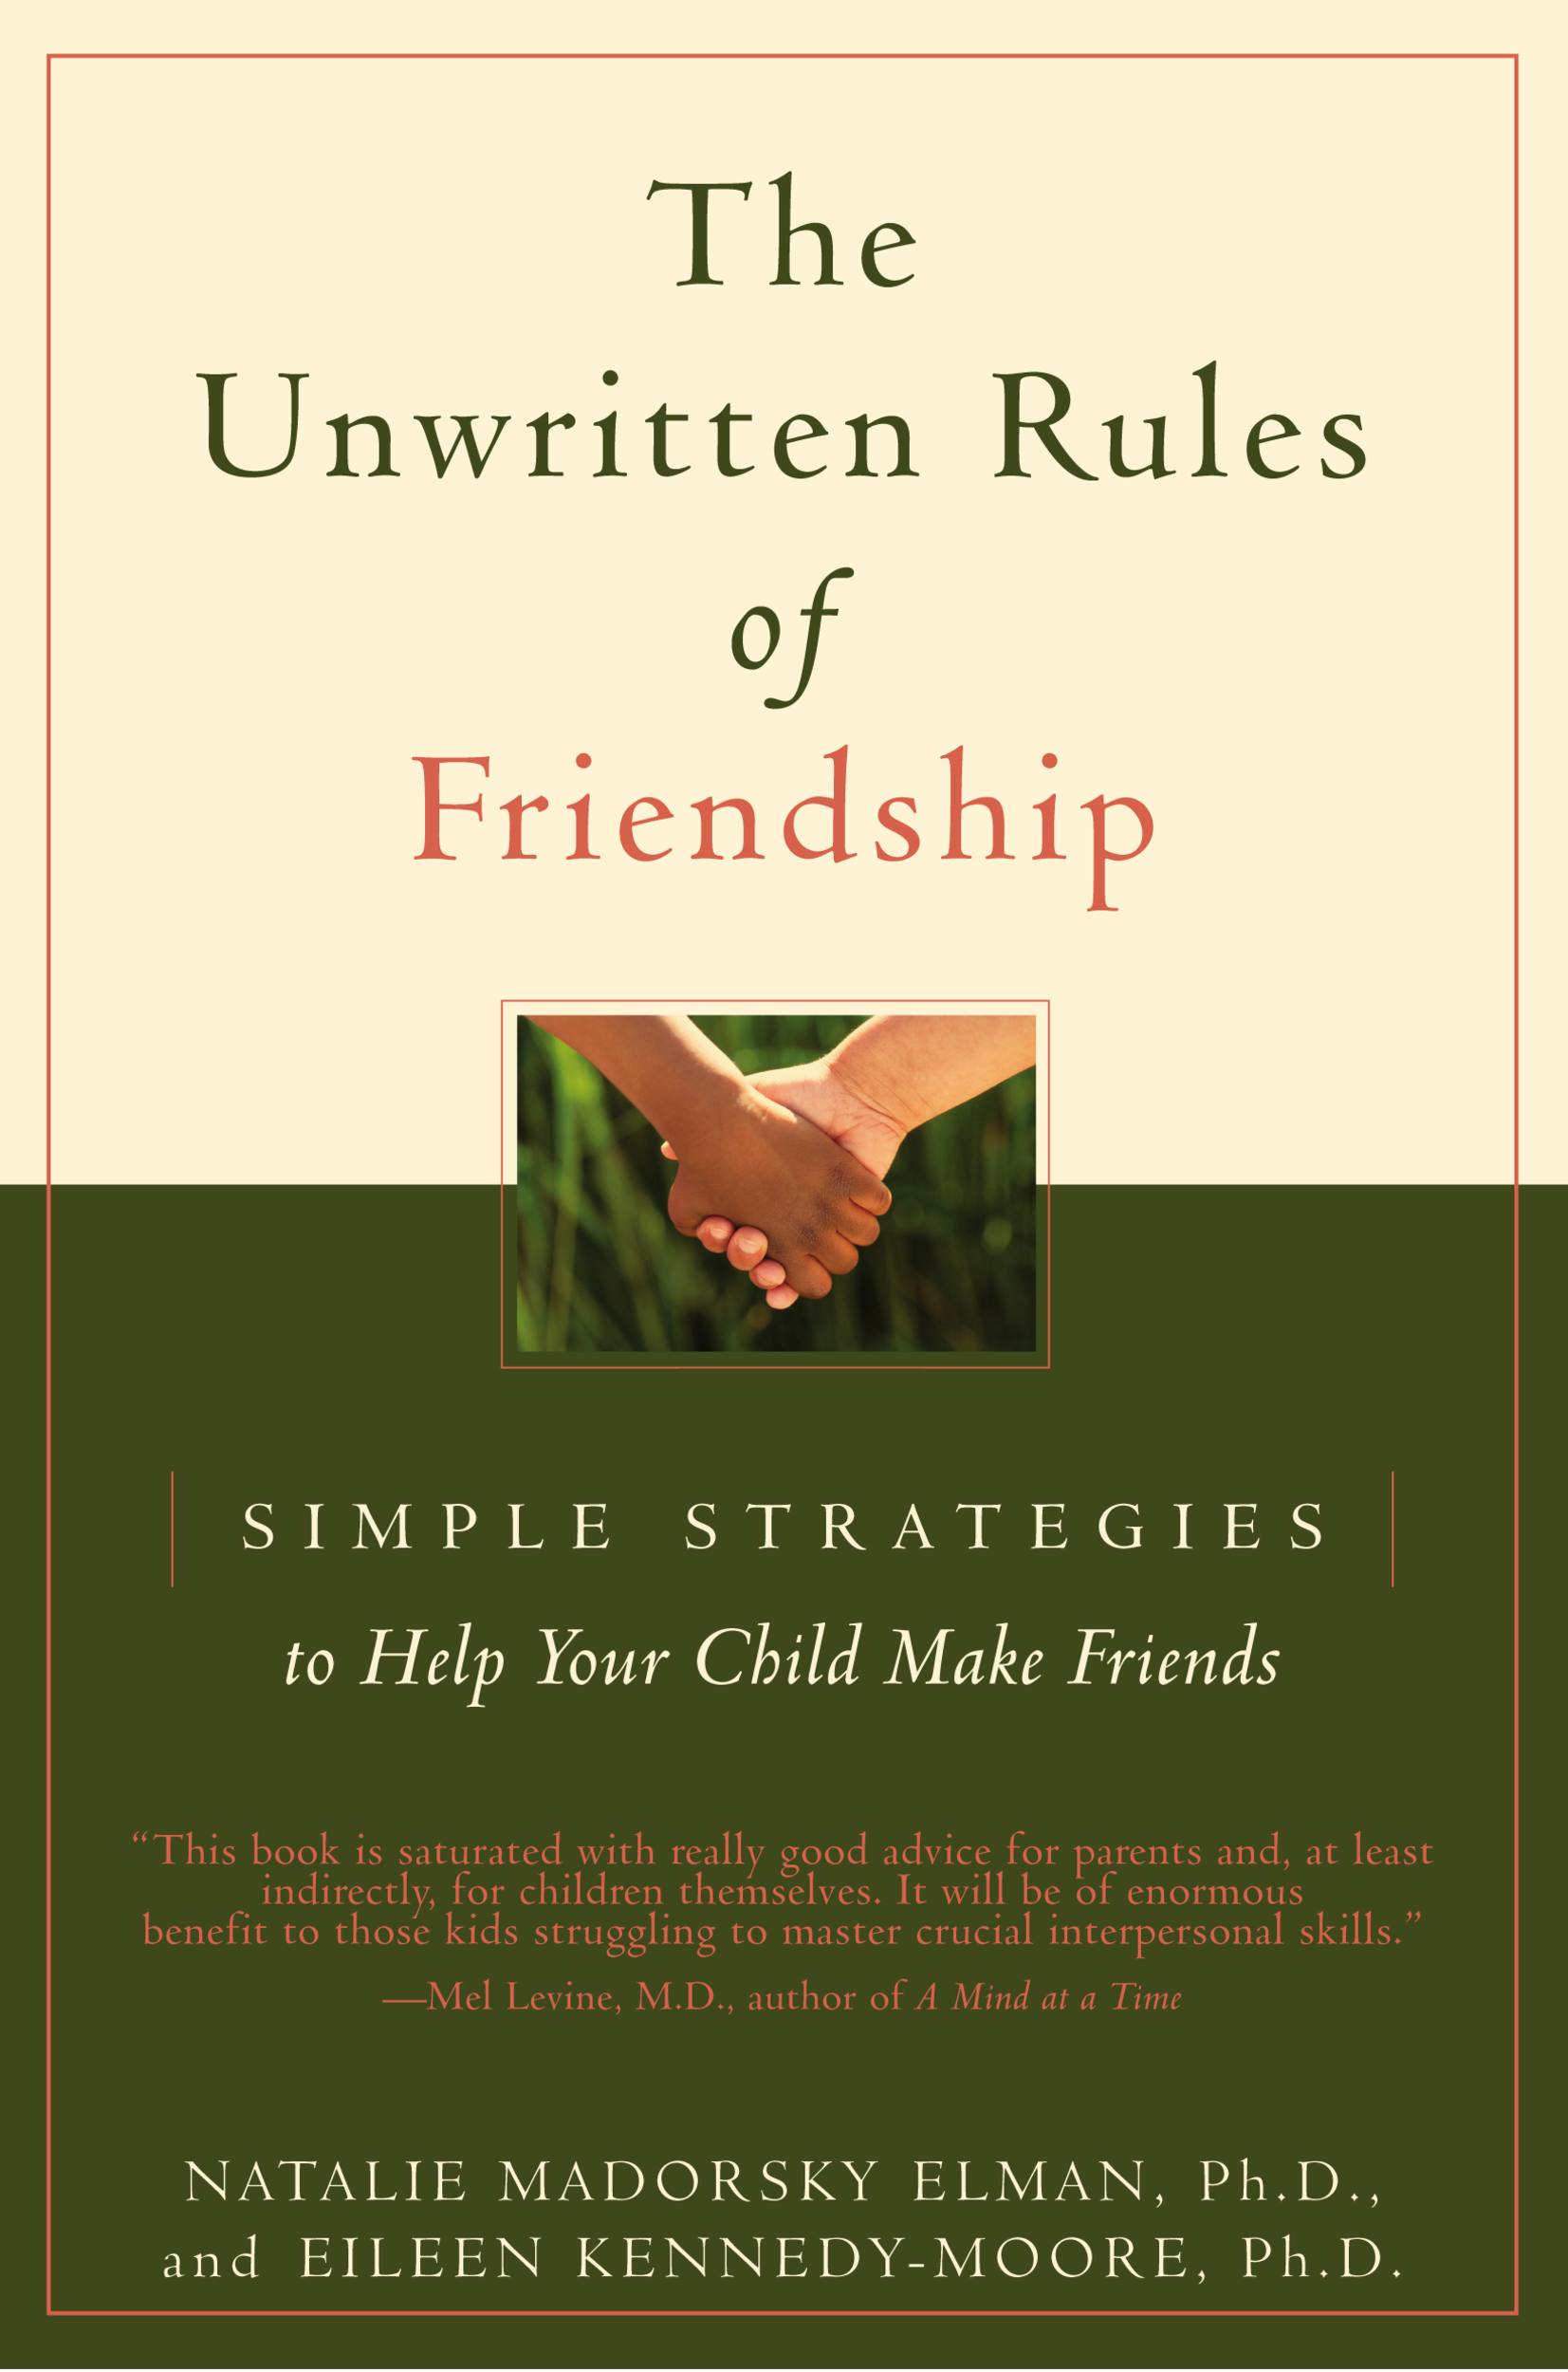 The Unwritten Rules of Friendship